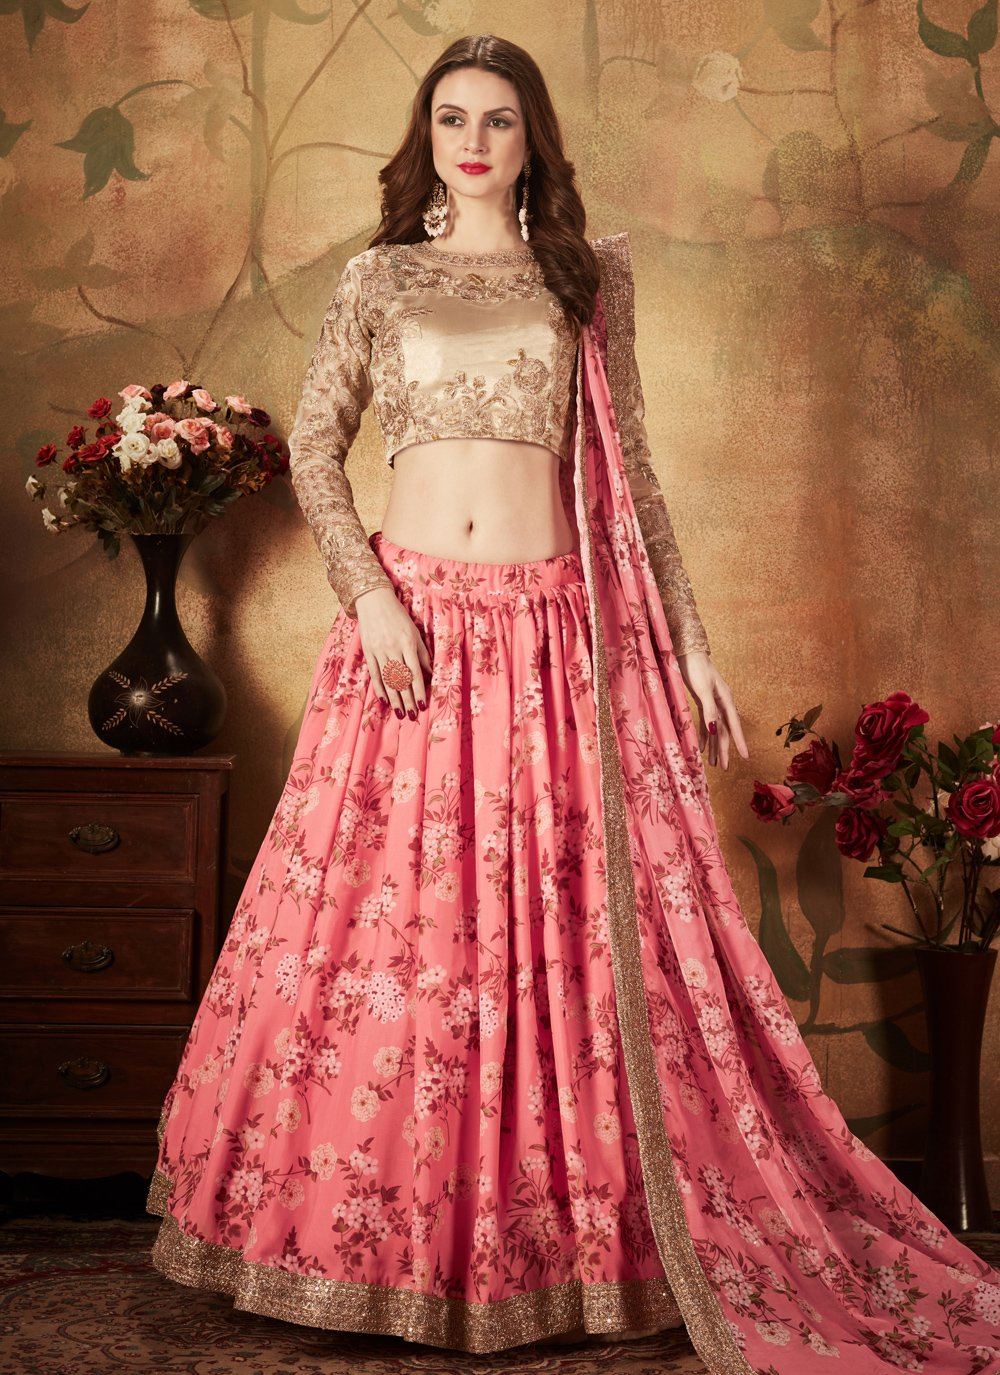 Pink Floral Print Party Bollywood Lehenga Choli